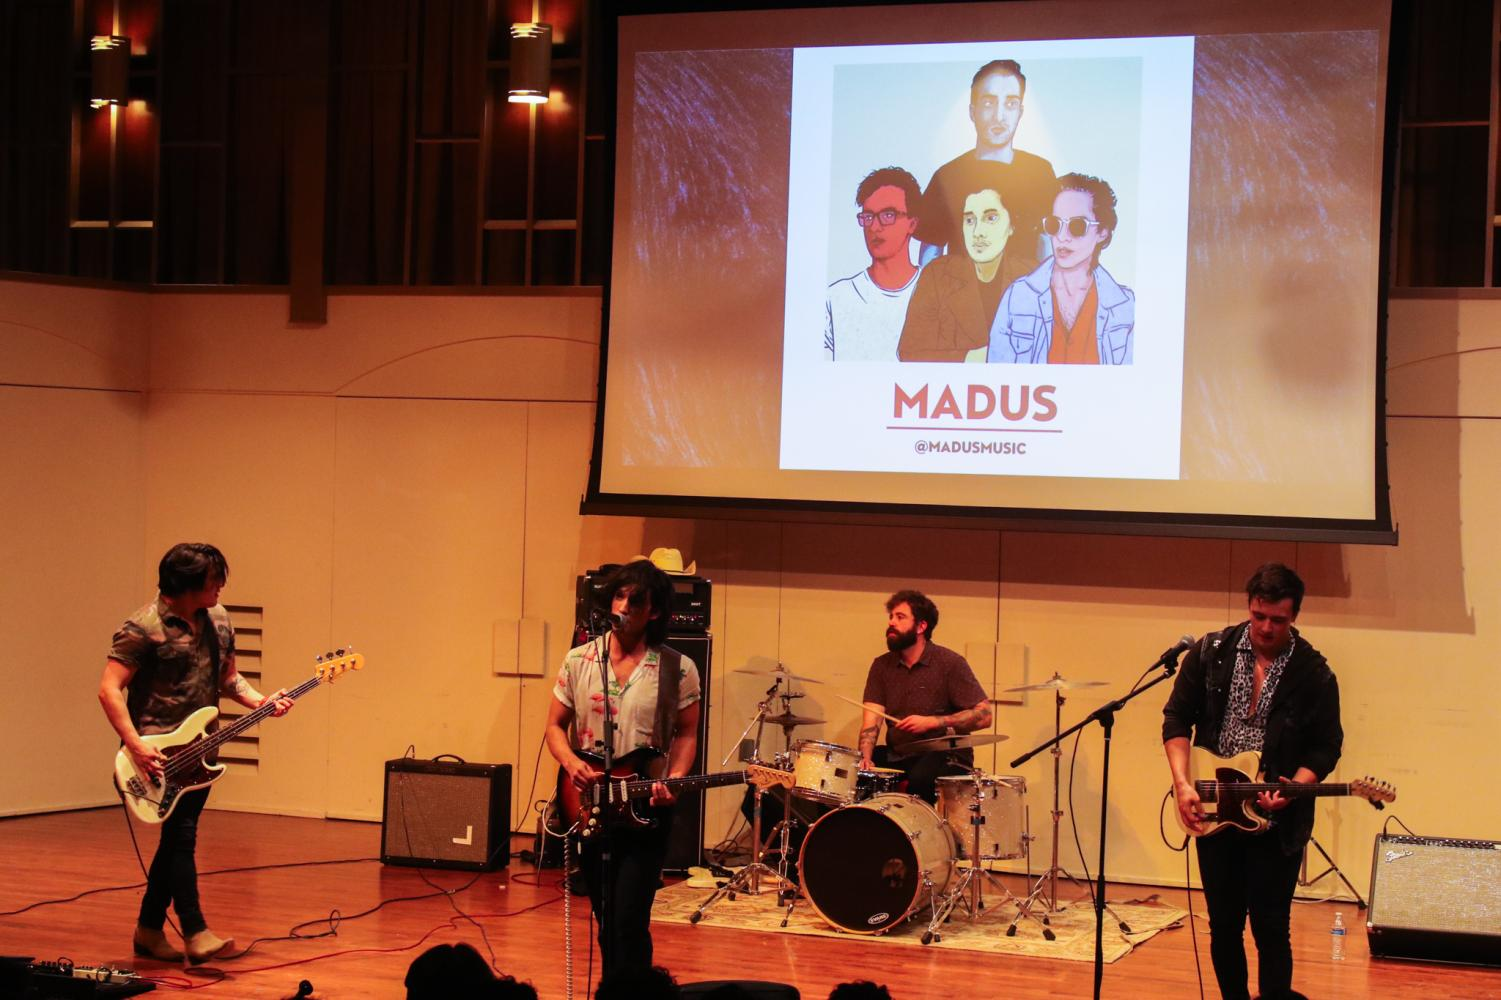 Madus performs live as winners of Artist of the Year 2020 at CSUN's Cypress Recital Hall, hosted by VOVE.